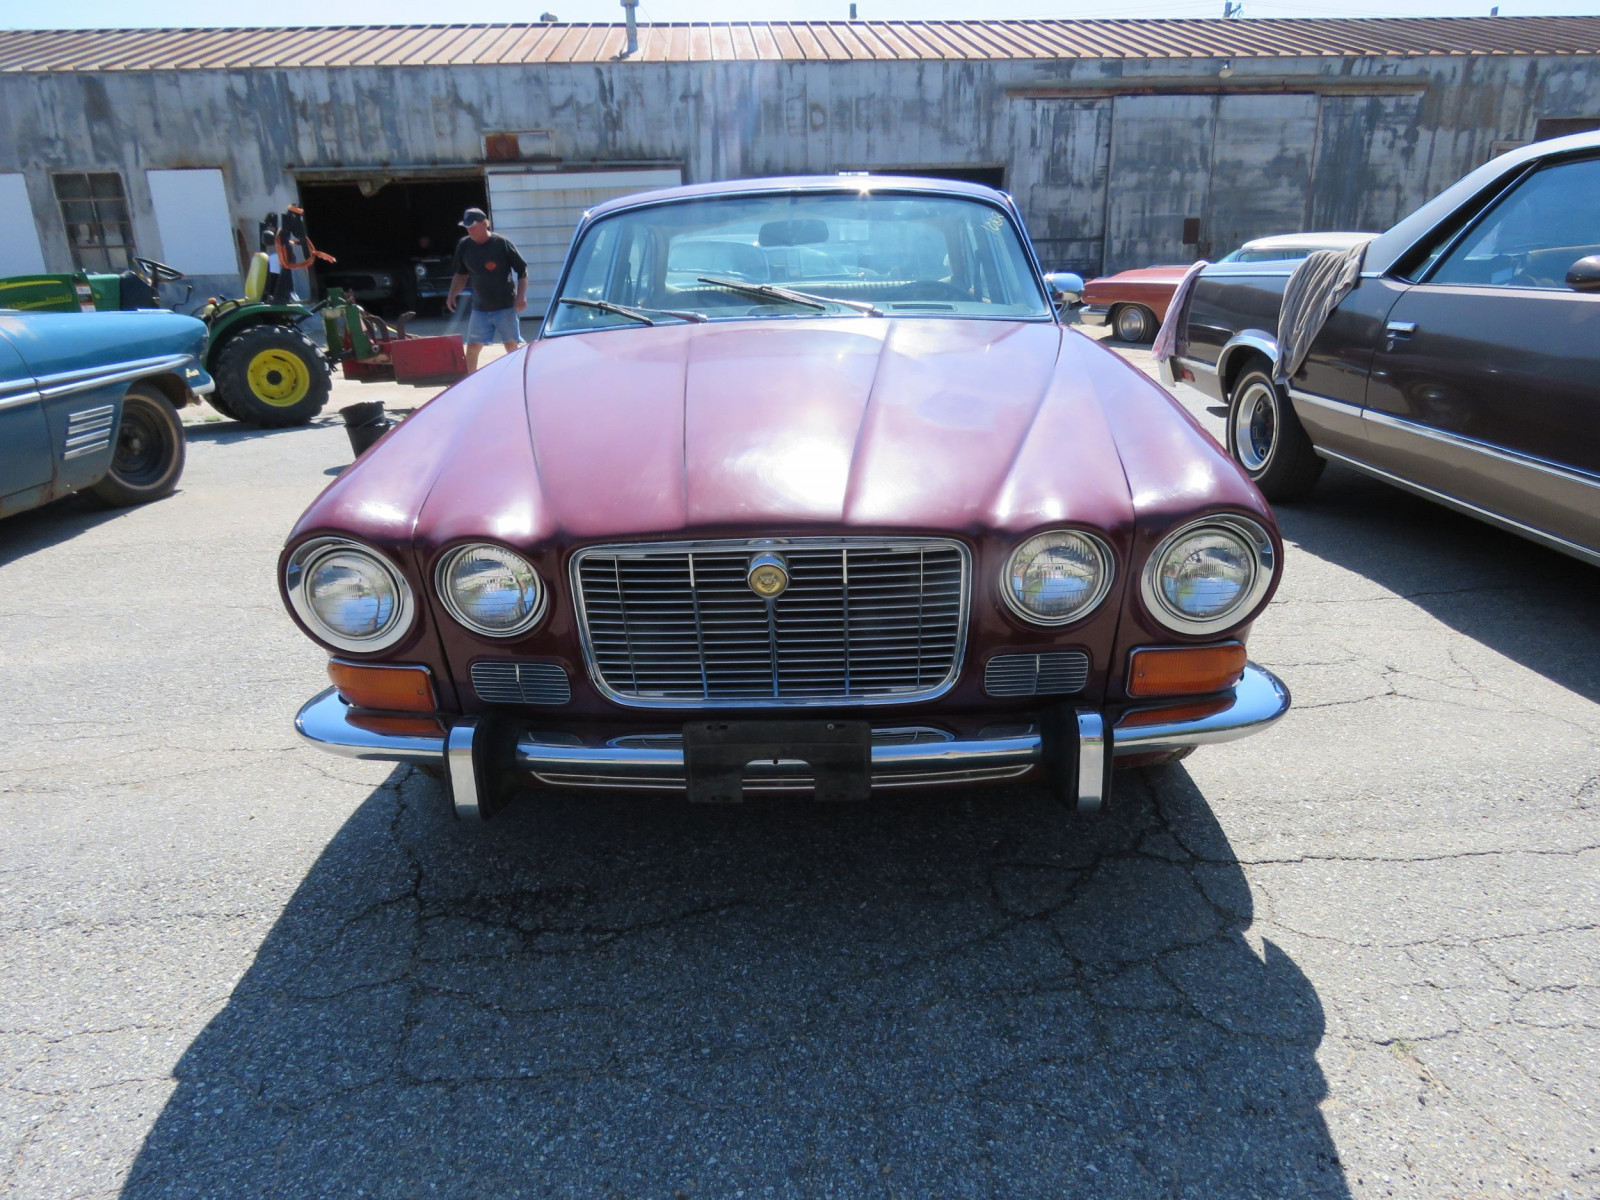 1973 JAGUAR XJ6 4DR SEDAN - Image 2